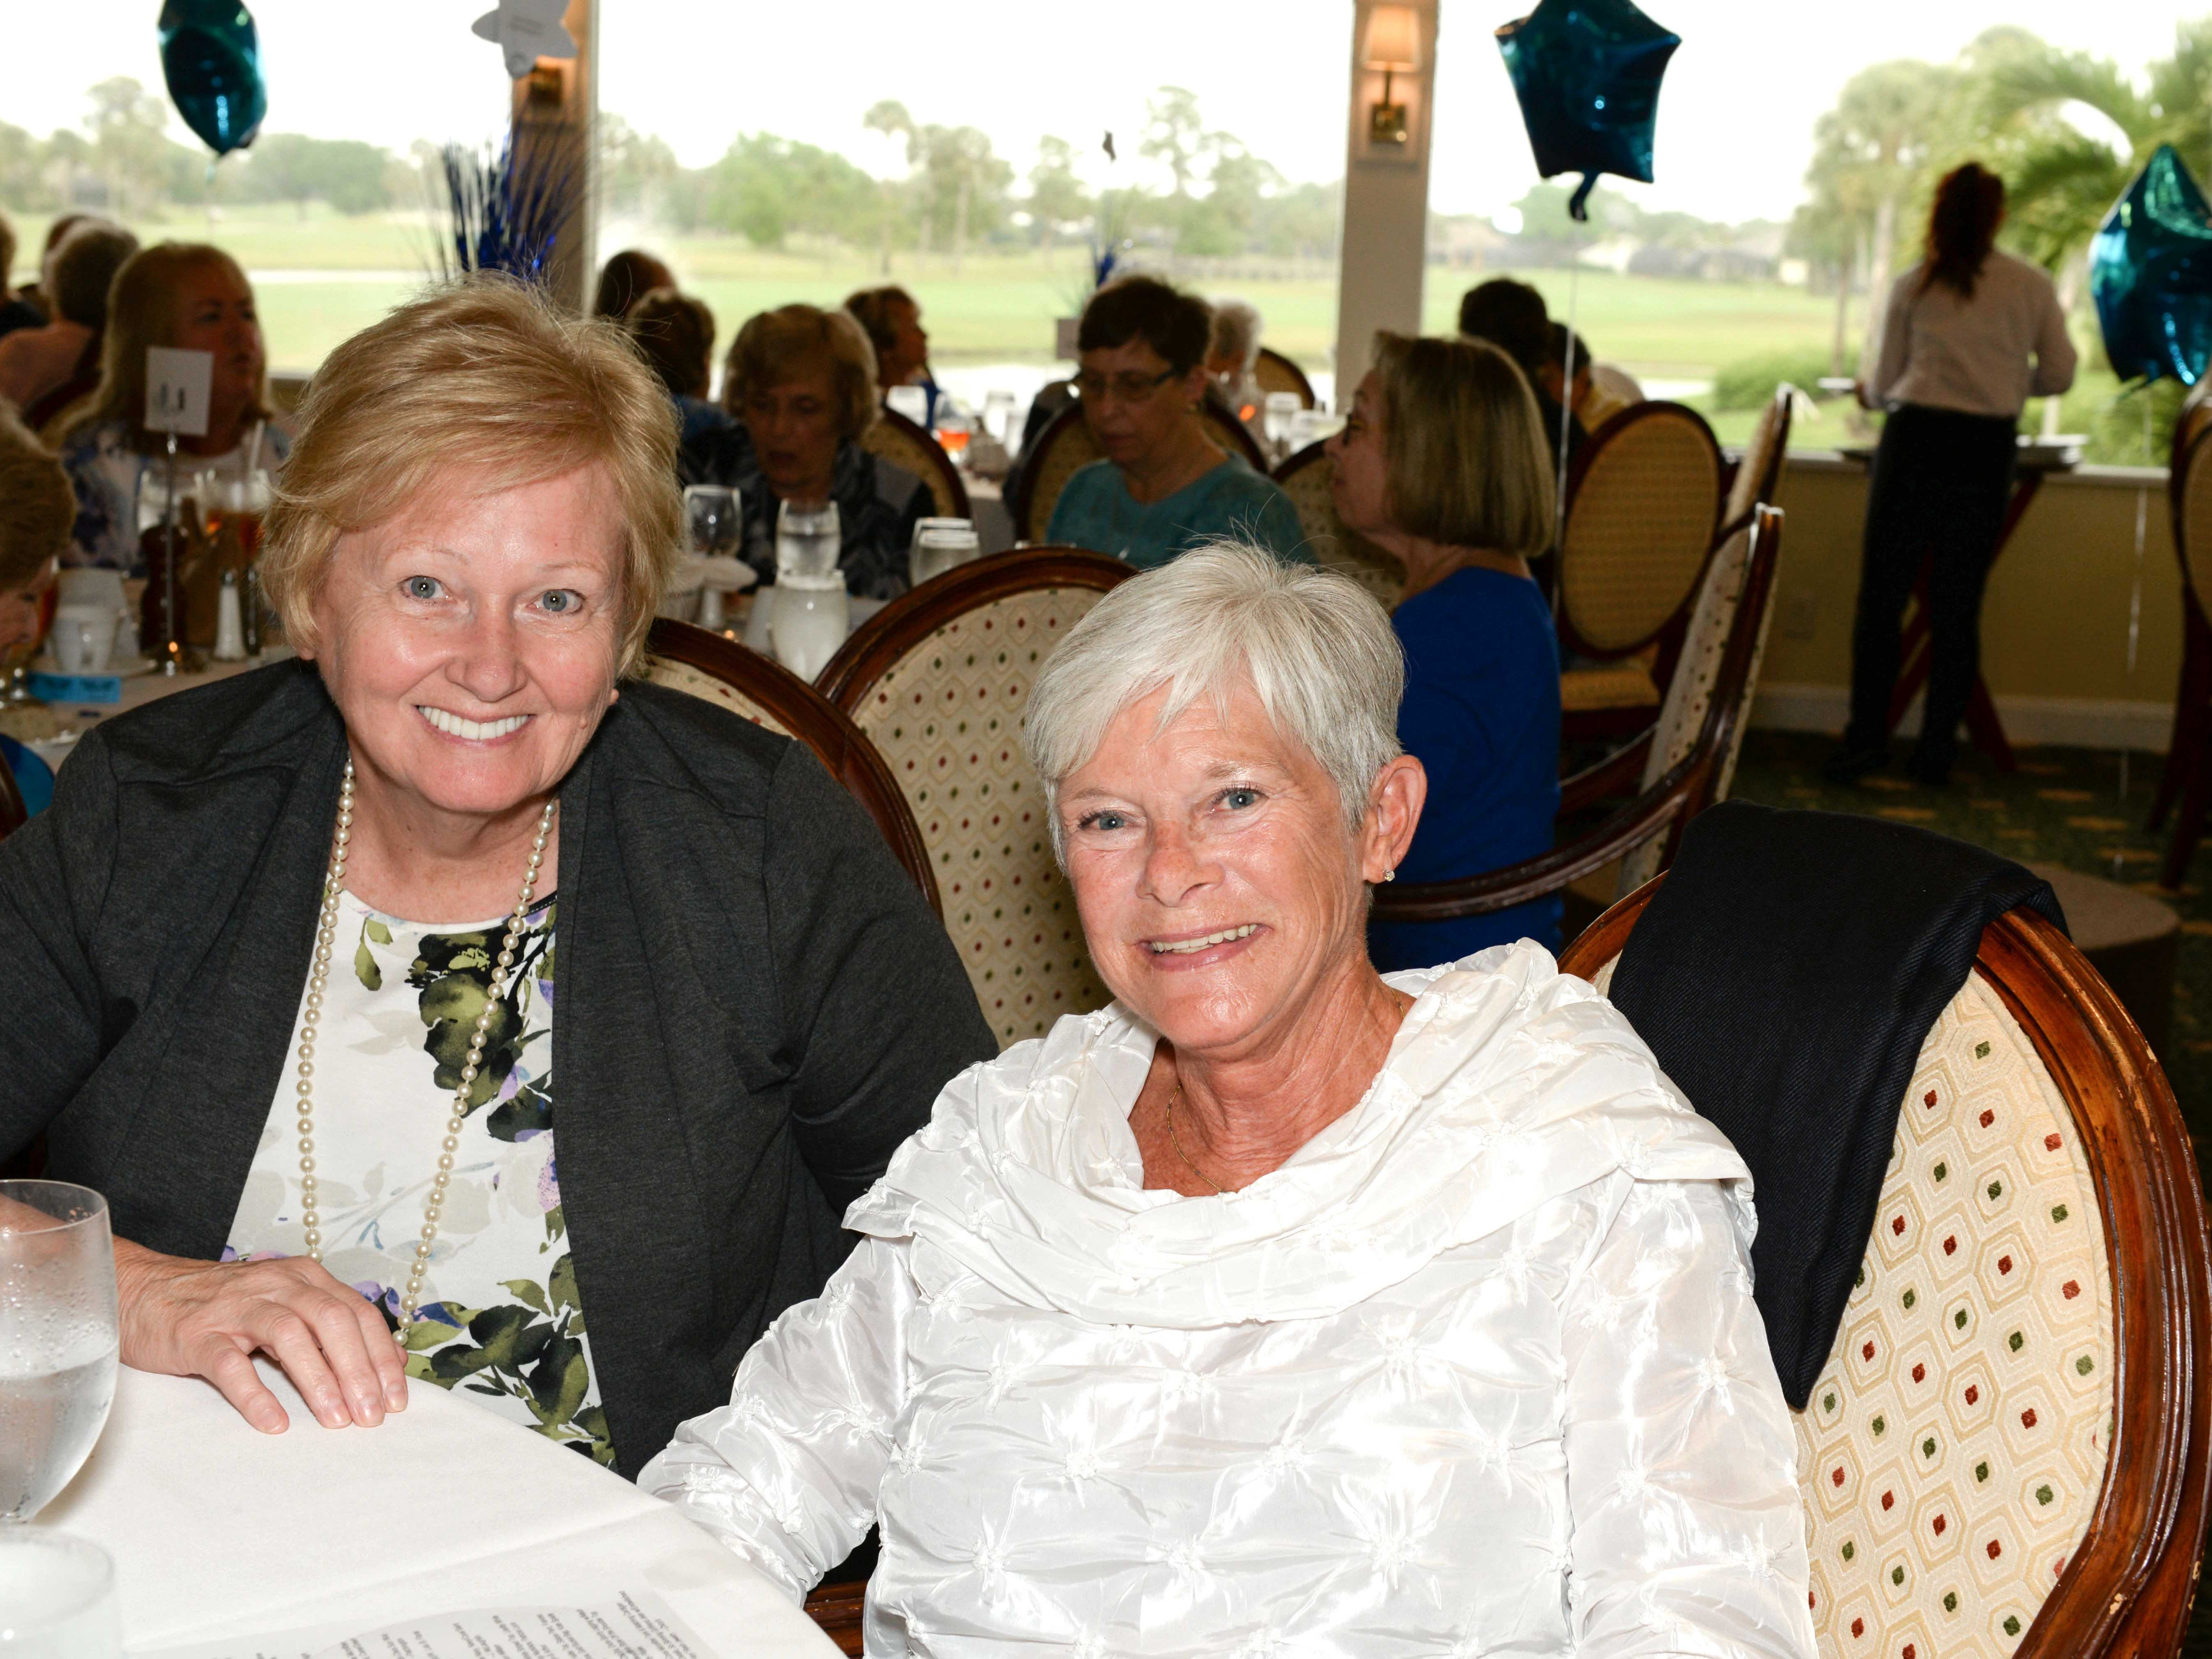 Karen Doster, left, and Mary White at Mariner Sands Country Club for the Sapphire Anniversary party of the American Association of University Women Stuart Branch.